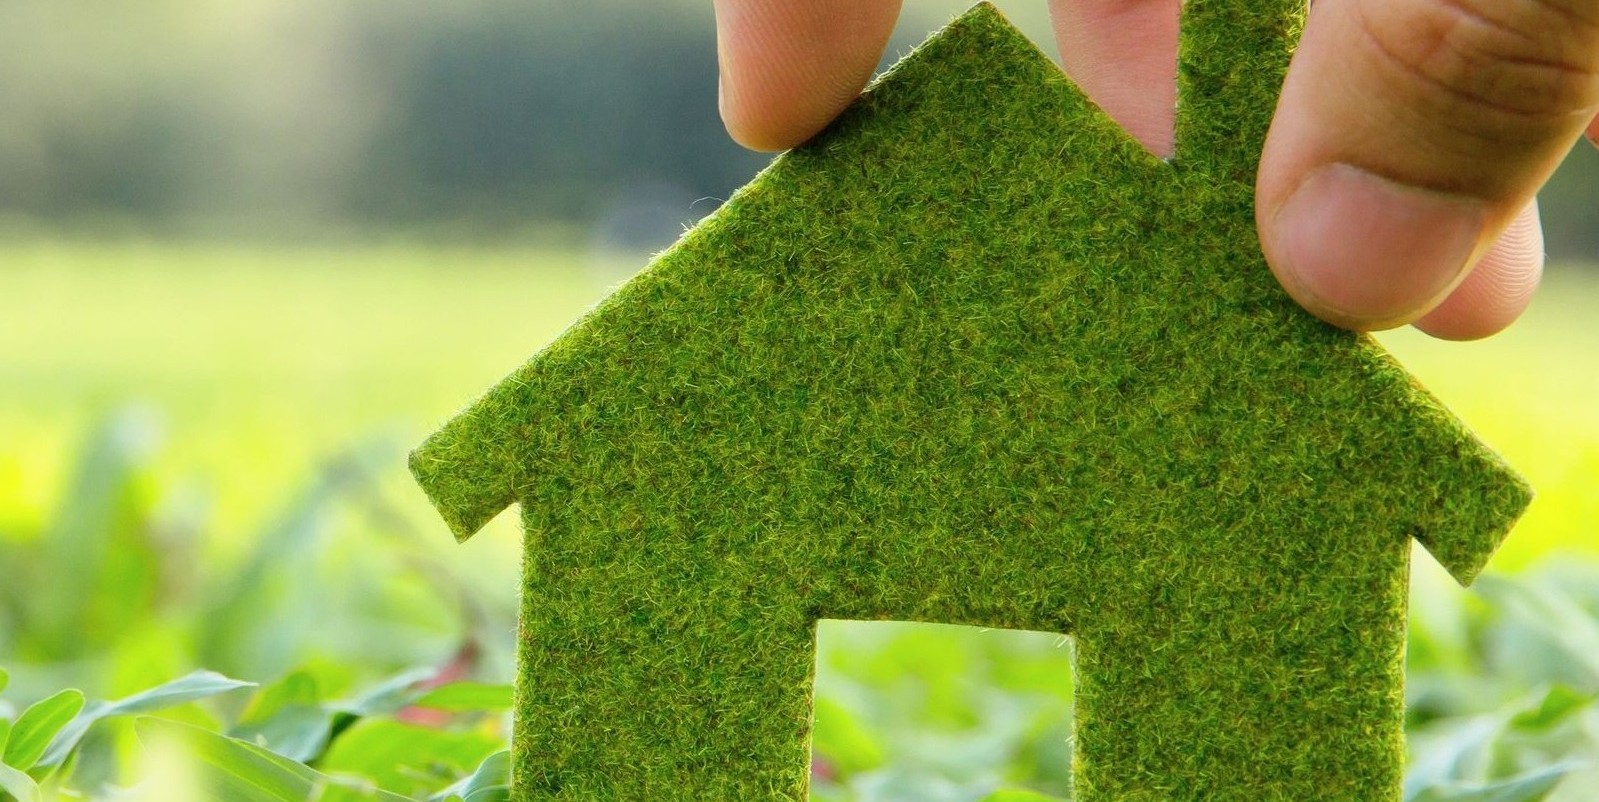 Six Simple Ways To Stop Wasting Energy at Home